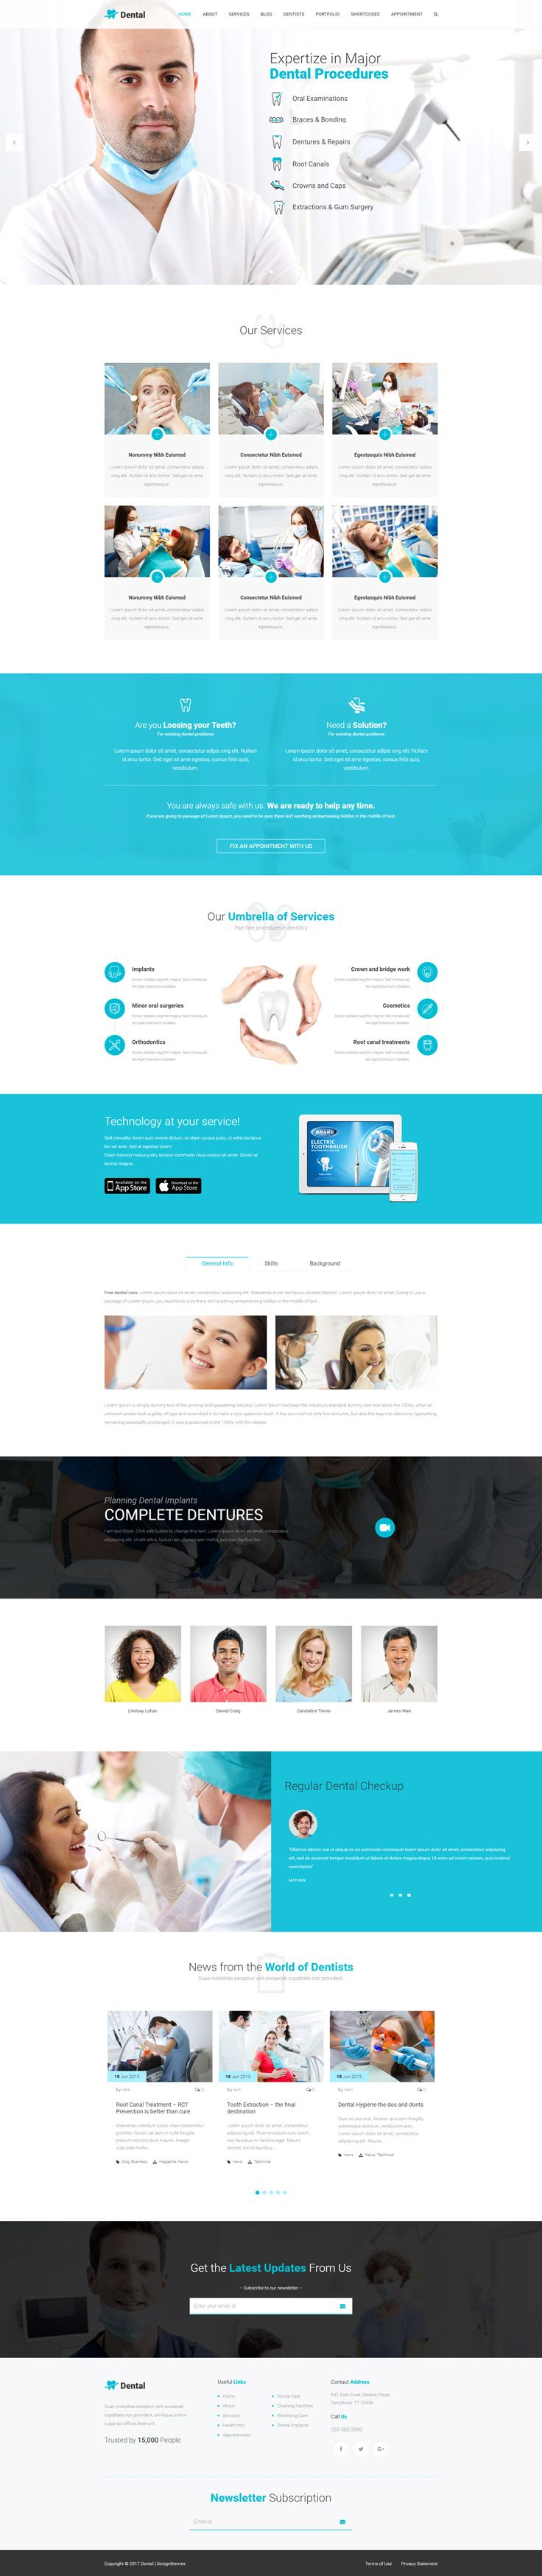 Best 25+ Dental websites ideas on Pinterest | Hospital website ...